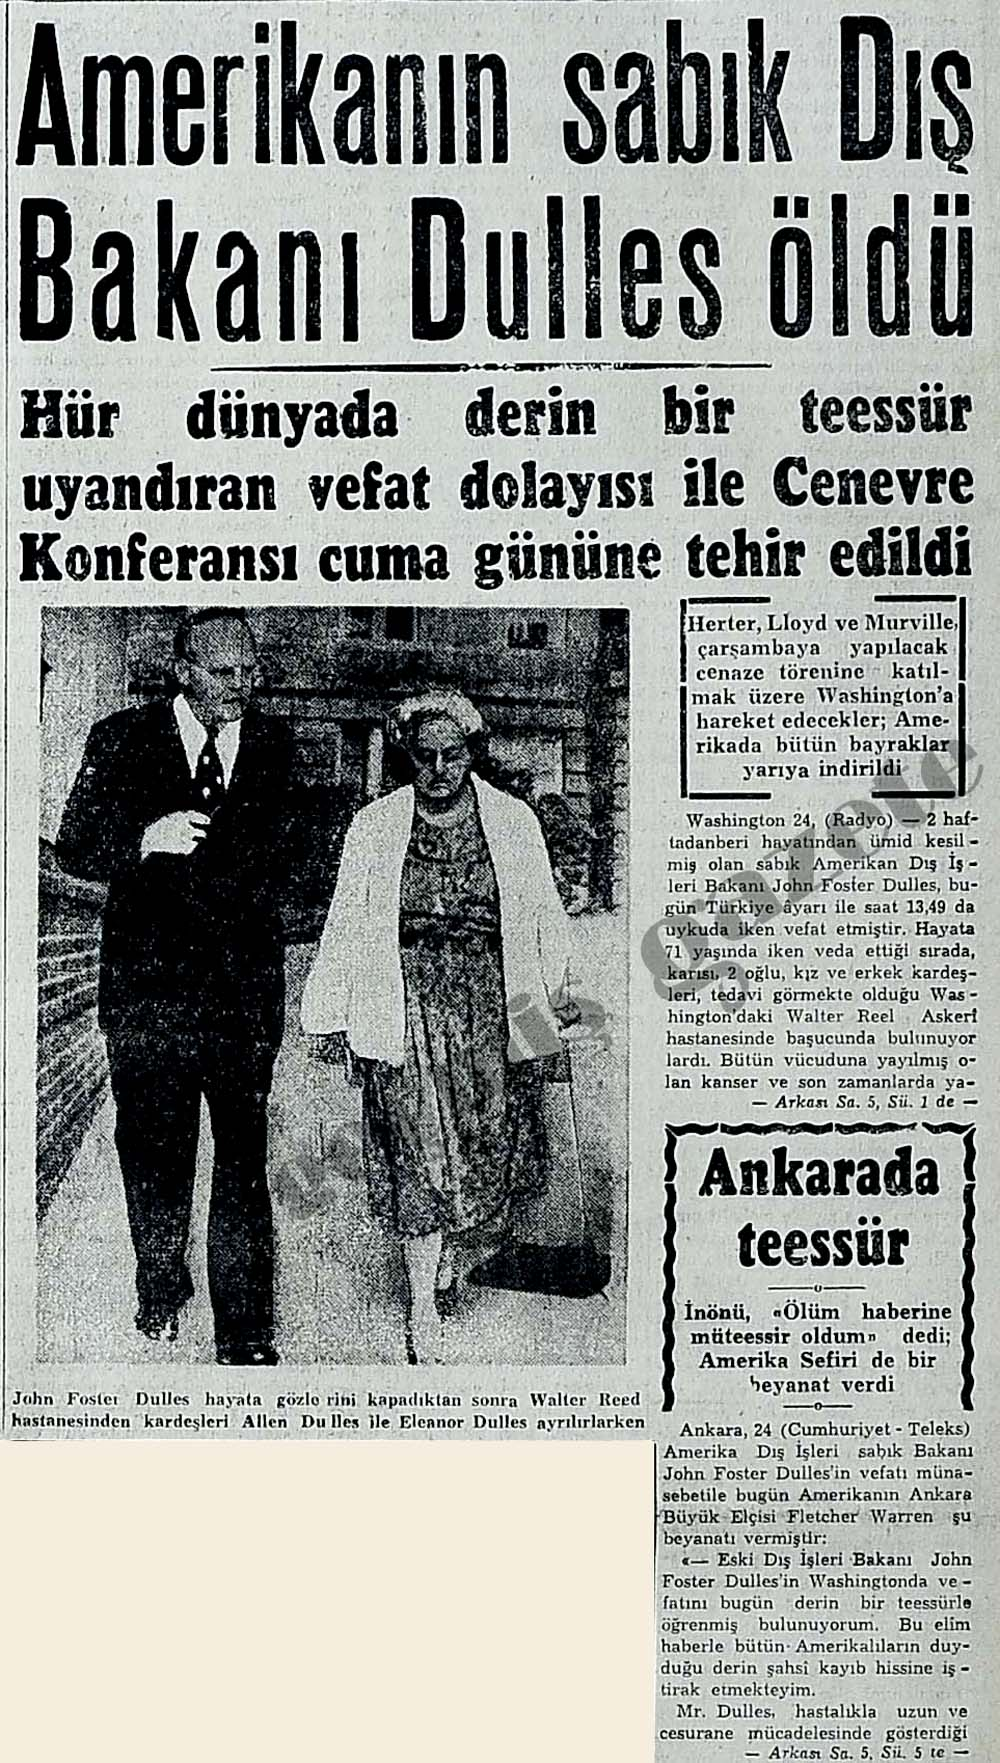 Amerikanın sabık Dış Bakanı Dulles öldü